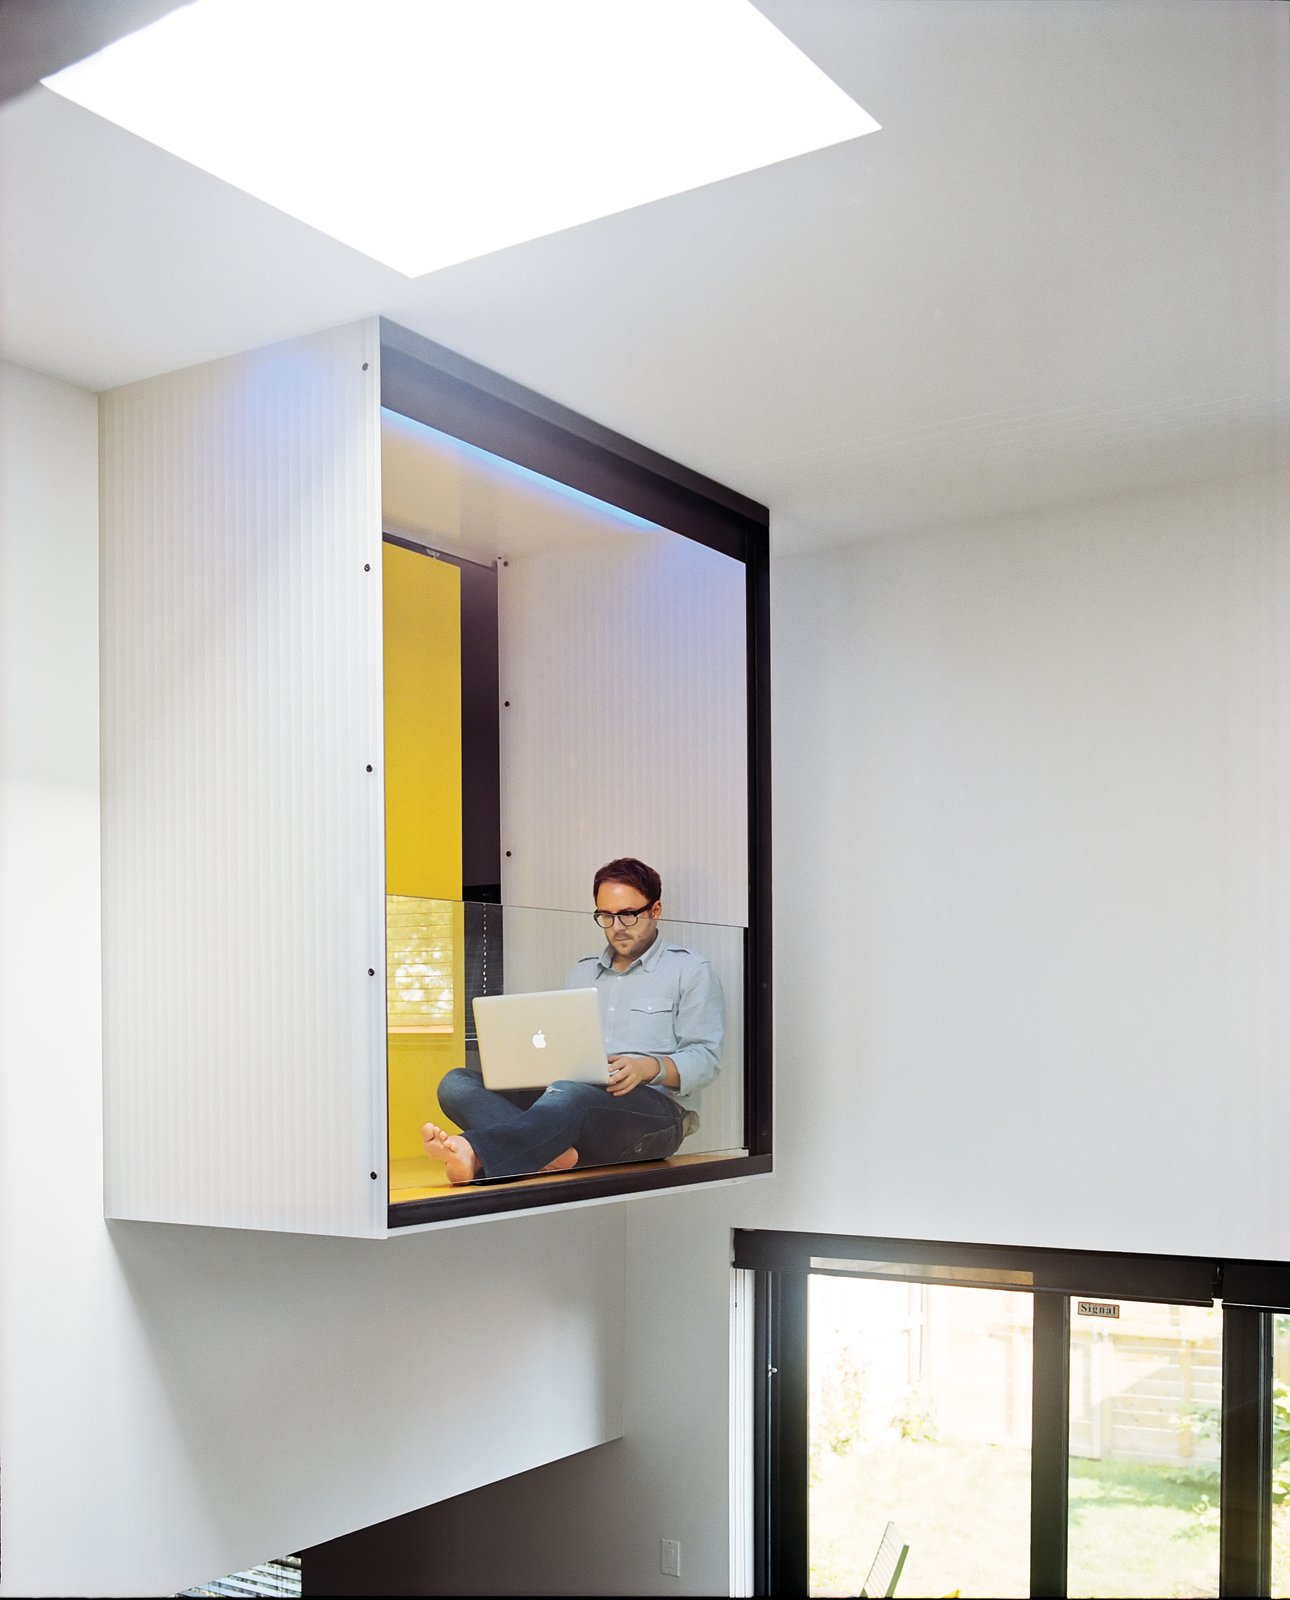 Raymond takes a break on the master bedroom's interior balcony, which is cantilevered over the dining area. Tagged: Windows and Skylight Window Type.  A Look at Reading Nooks by Diana Budds from Split the Difference